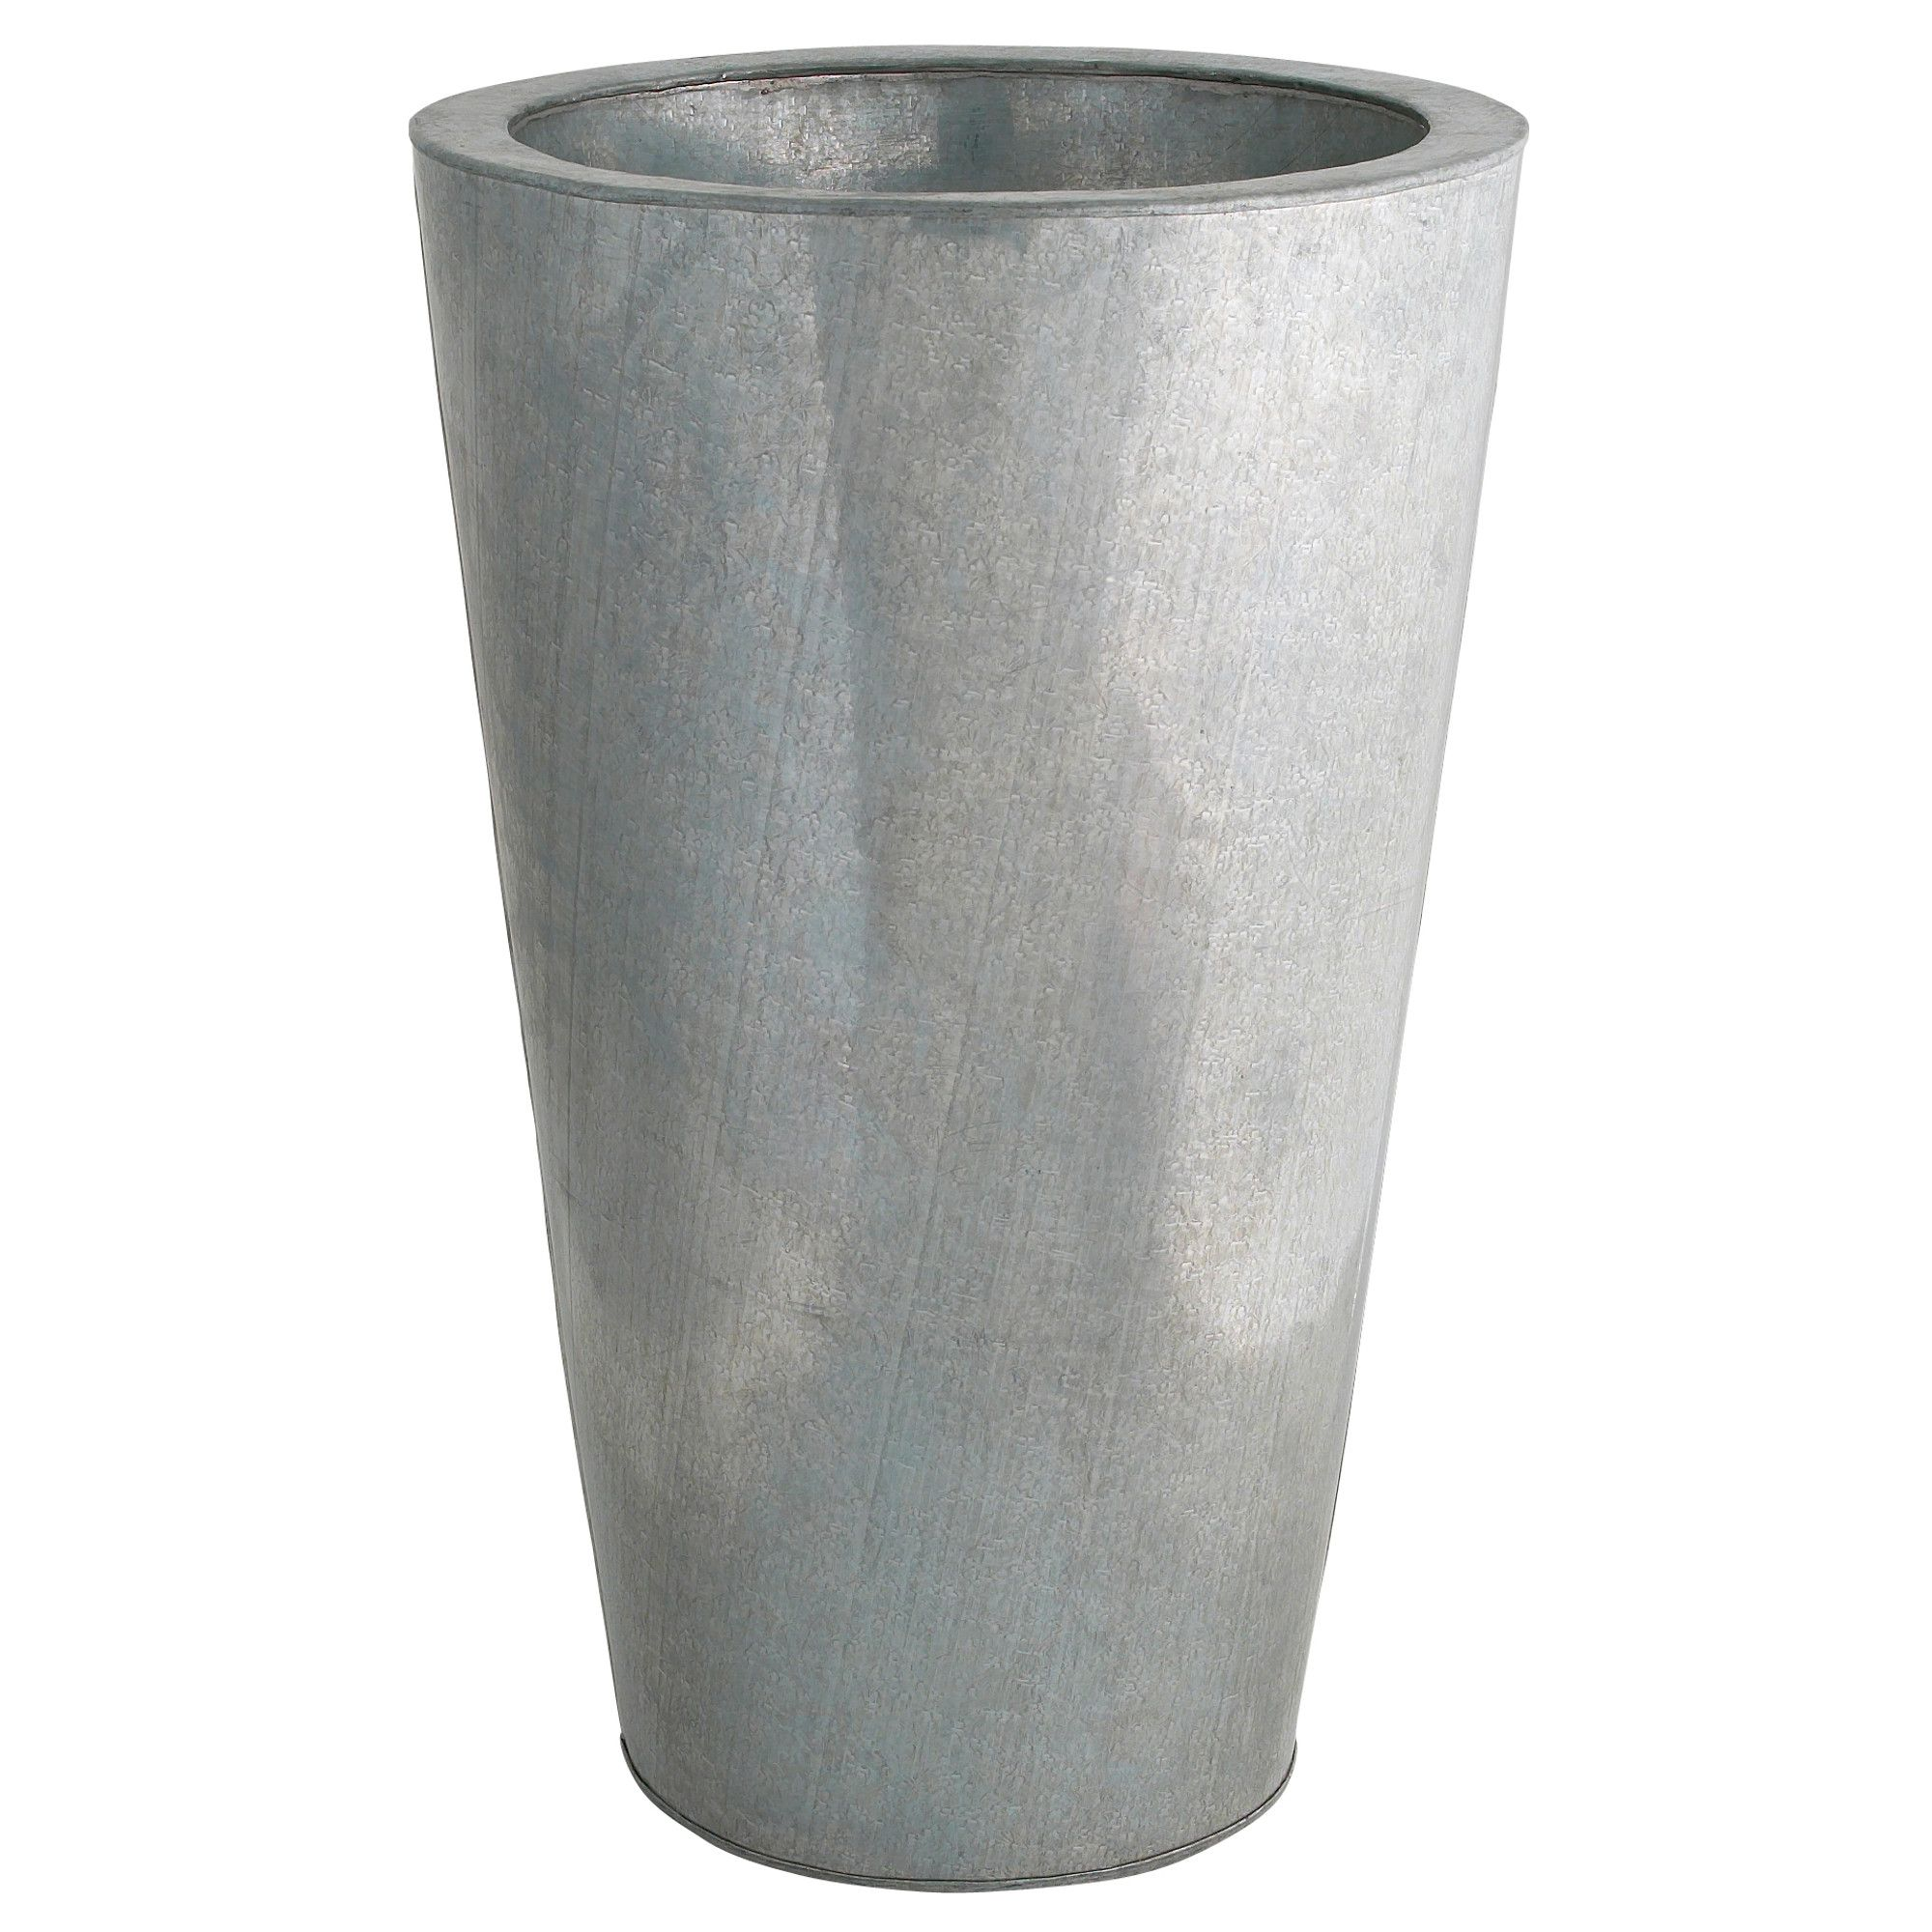 "husÖn plant pot - ikea. height: 23 ½ "" inside diameter: 12 ½ "" 